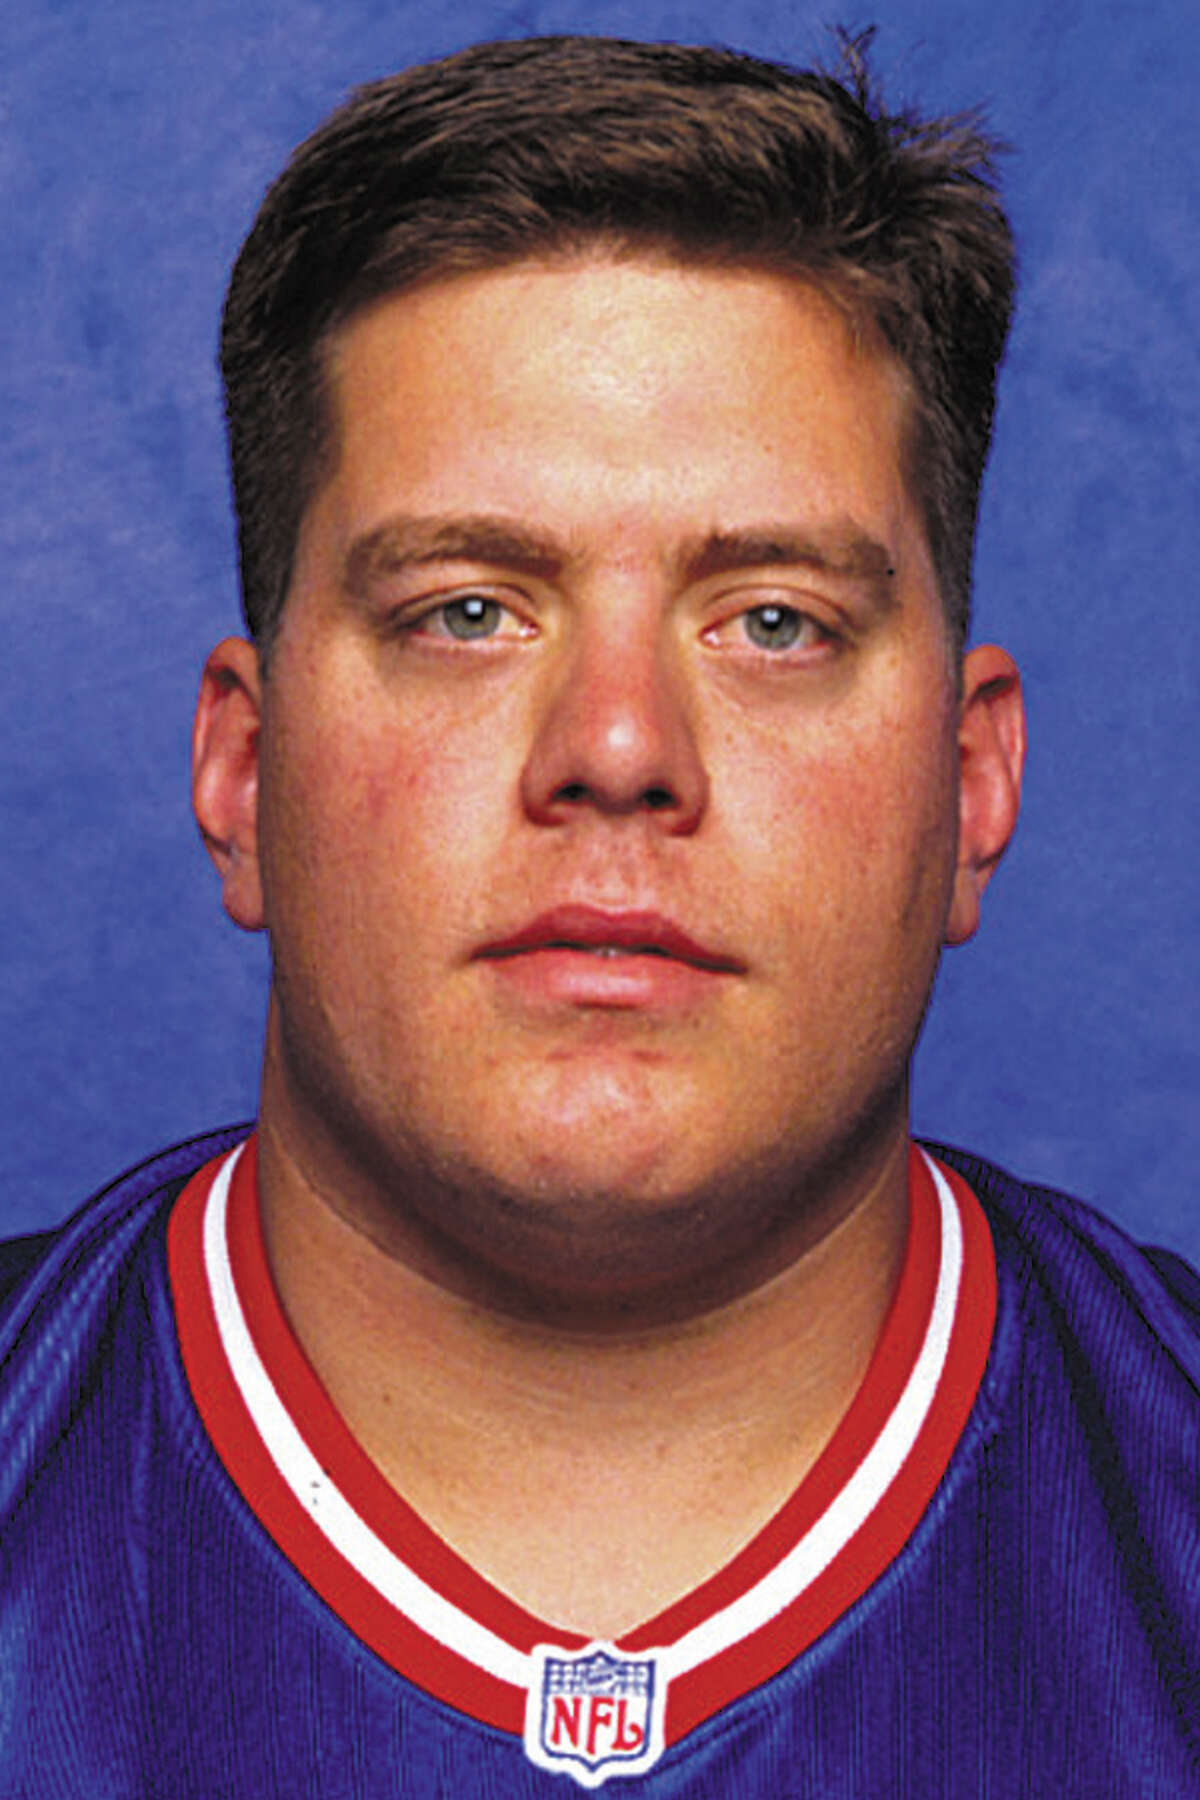 FILE - This 1998 photo provided by the NFL shows New York Giants football player Bryan Stoltenberg. Stoltenberg, an All-America offensive lineman for the Colorado Buffaloes, died Friday, Jan. 4, 2013, at his home in Sugarland, Texas. He was 40. Stoltenberg recently underwent several surgeries after being in a car accident last month, the school said on its website. (AP Photo/NFL, File) NO SALES